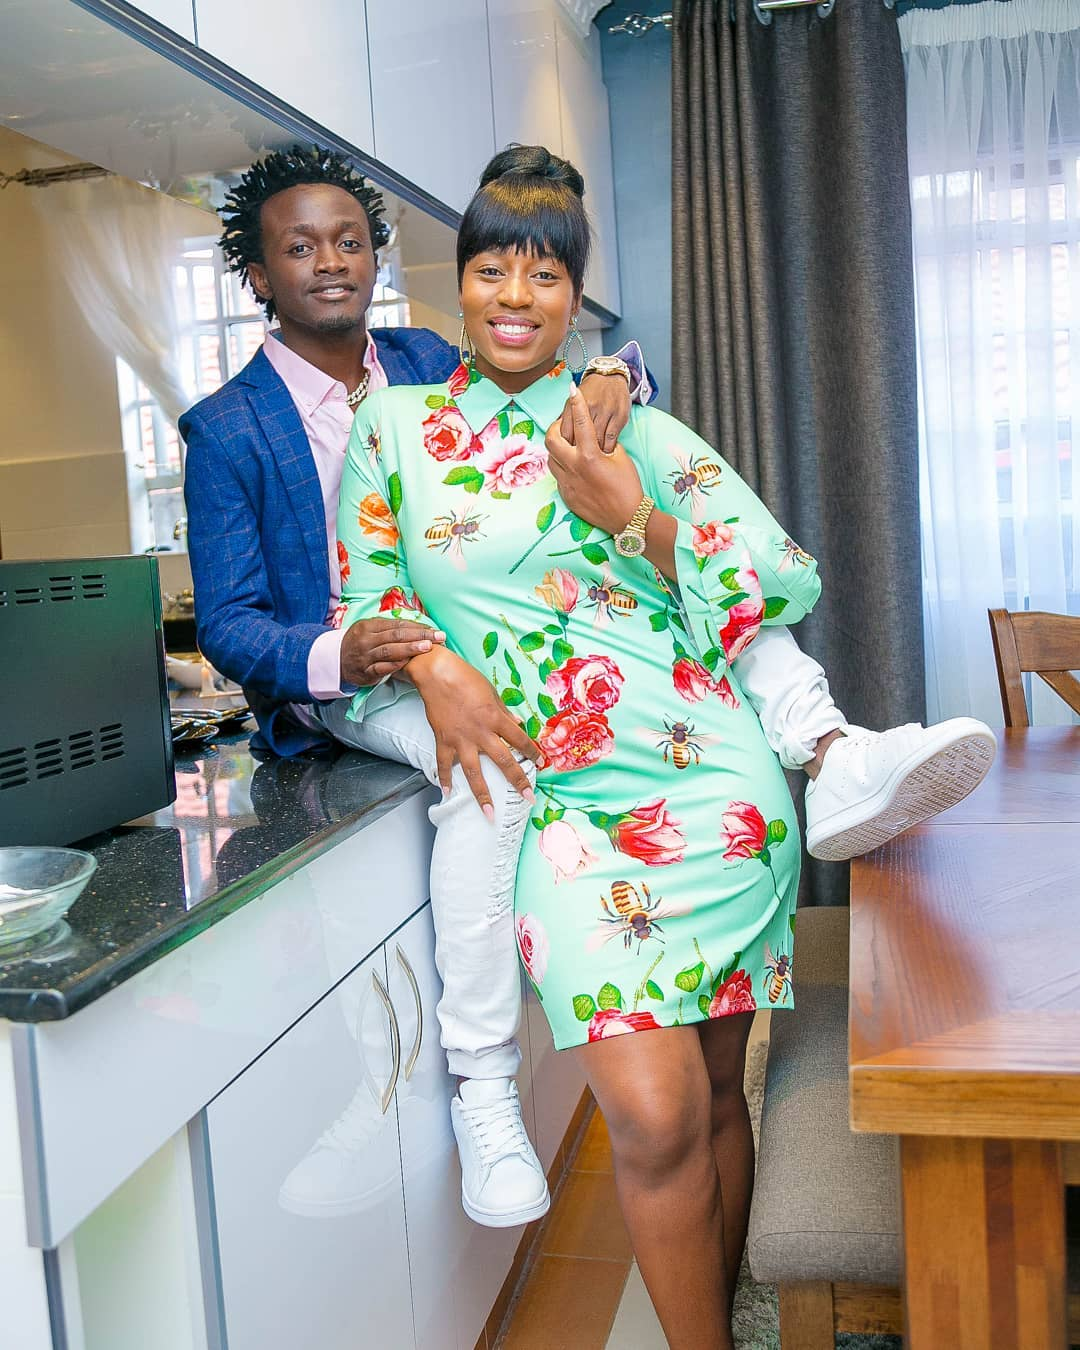 44212176 1986673434965489 5167859594580461537 n - 'All that matters is that I love Bahati', Diana Marua tells off ageist critics